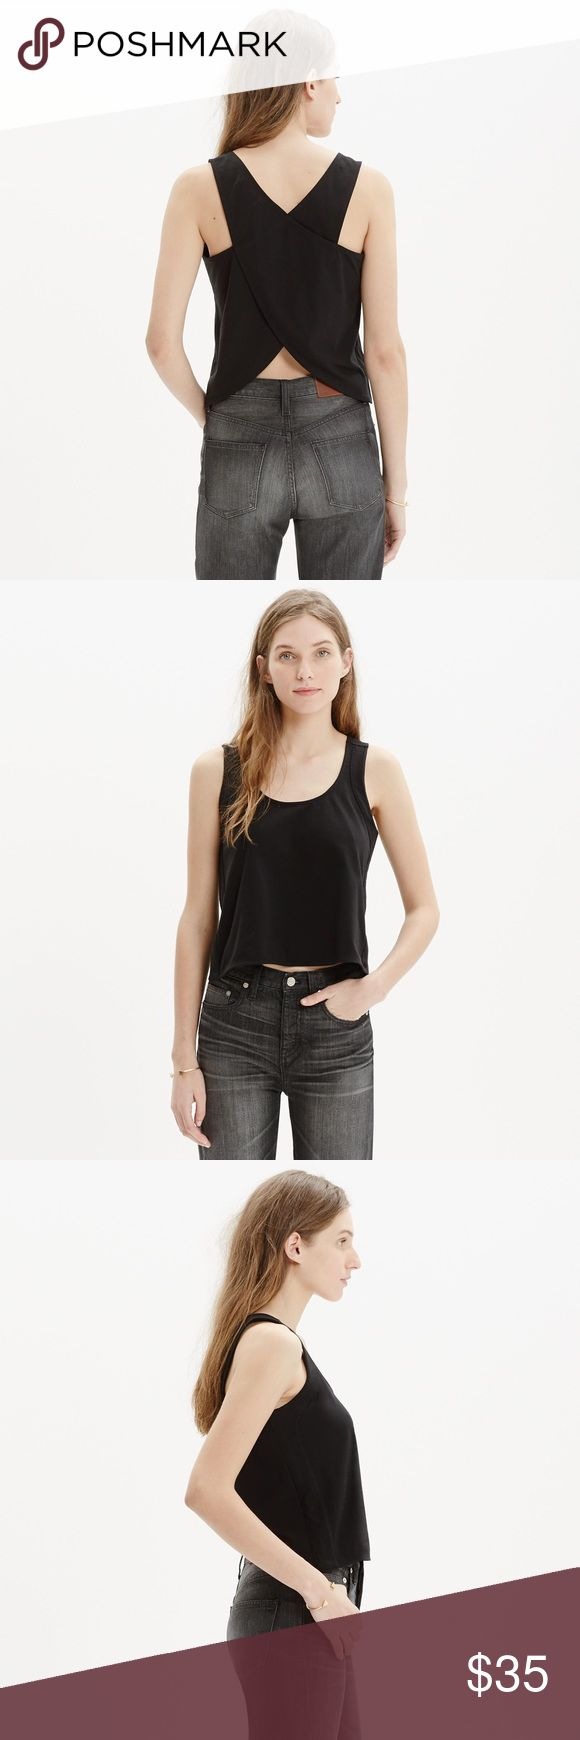 Madewell // cross-back crop tank A cropped tank top with a crossover back detail that flashes a hint of skin. Simple meets sexy.    Cropped fit. Size small. Excellent pre-owned condition, no flaws. Sold out online, highly rated. Cotton. Machine wash. Import. Item C3976. Madewell Tops Crop Tops